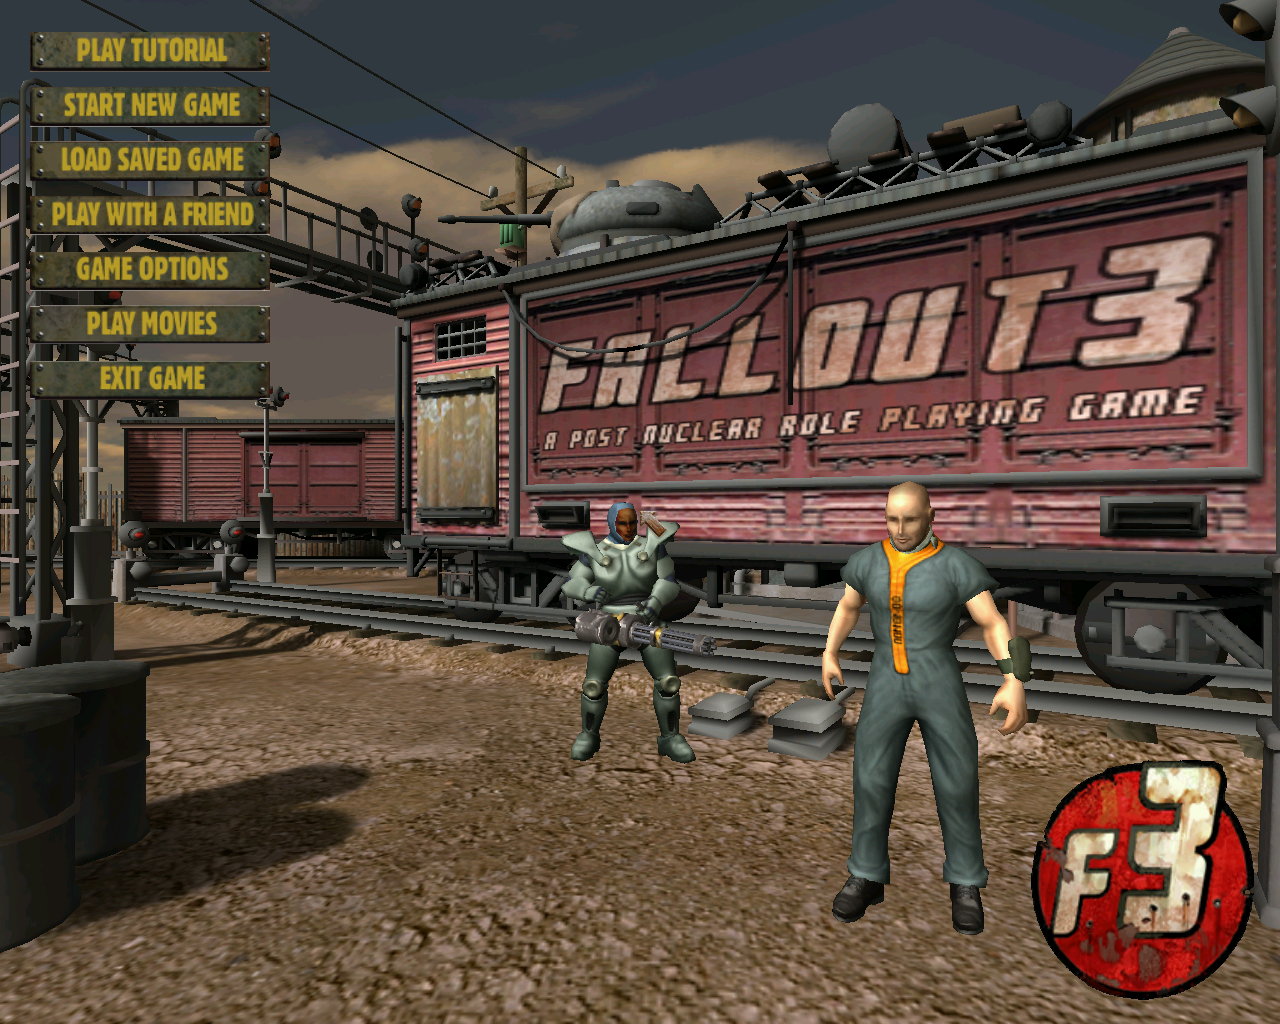 Spear clipart fallout 2. Episode chris avellone takes